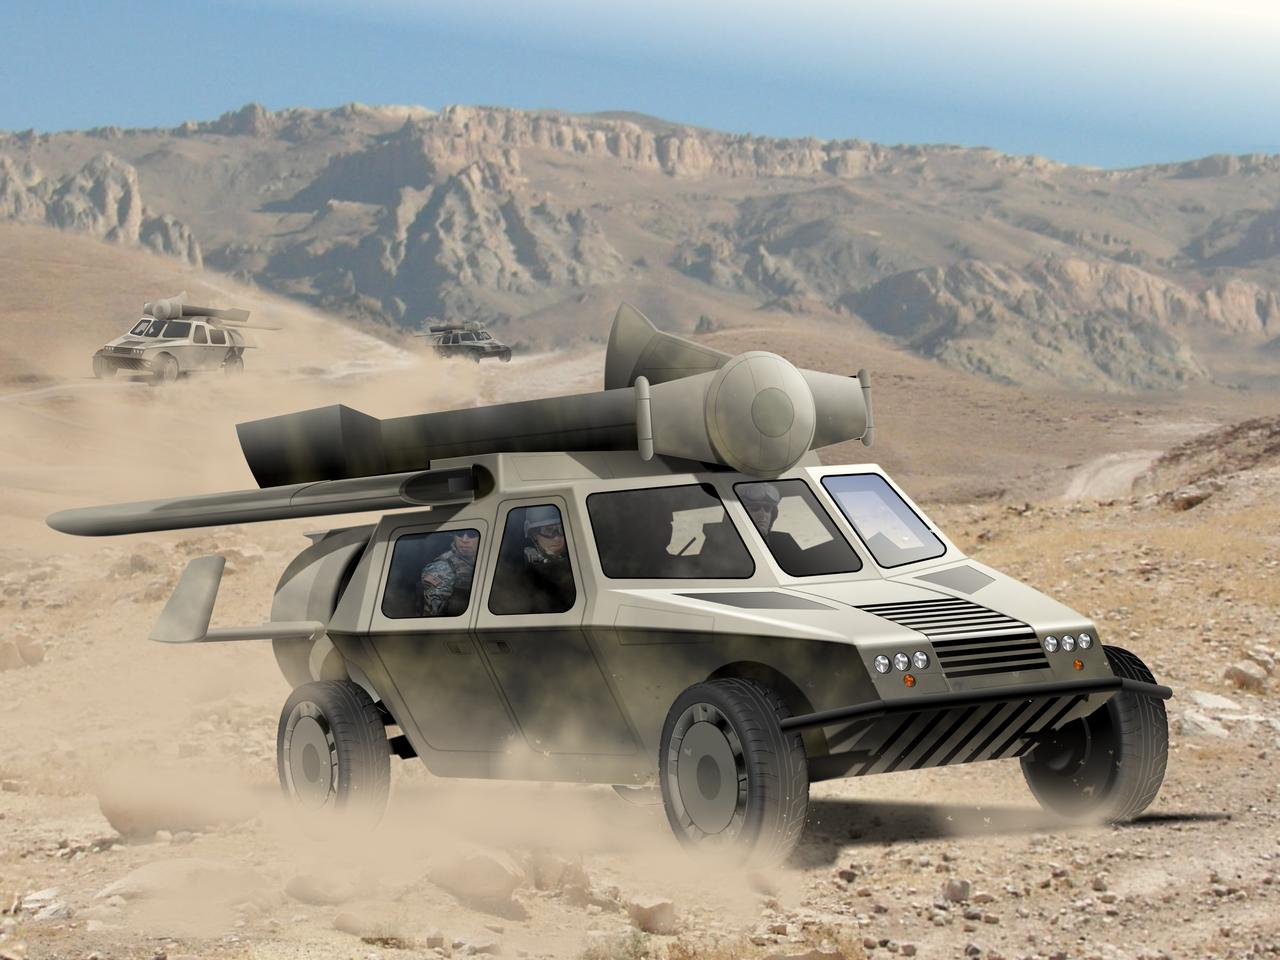 Terrafugia will contribute expertise towards the design of the Transformer - a cross between a Humvee and a helicopter (Image: AAI Corporation)